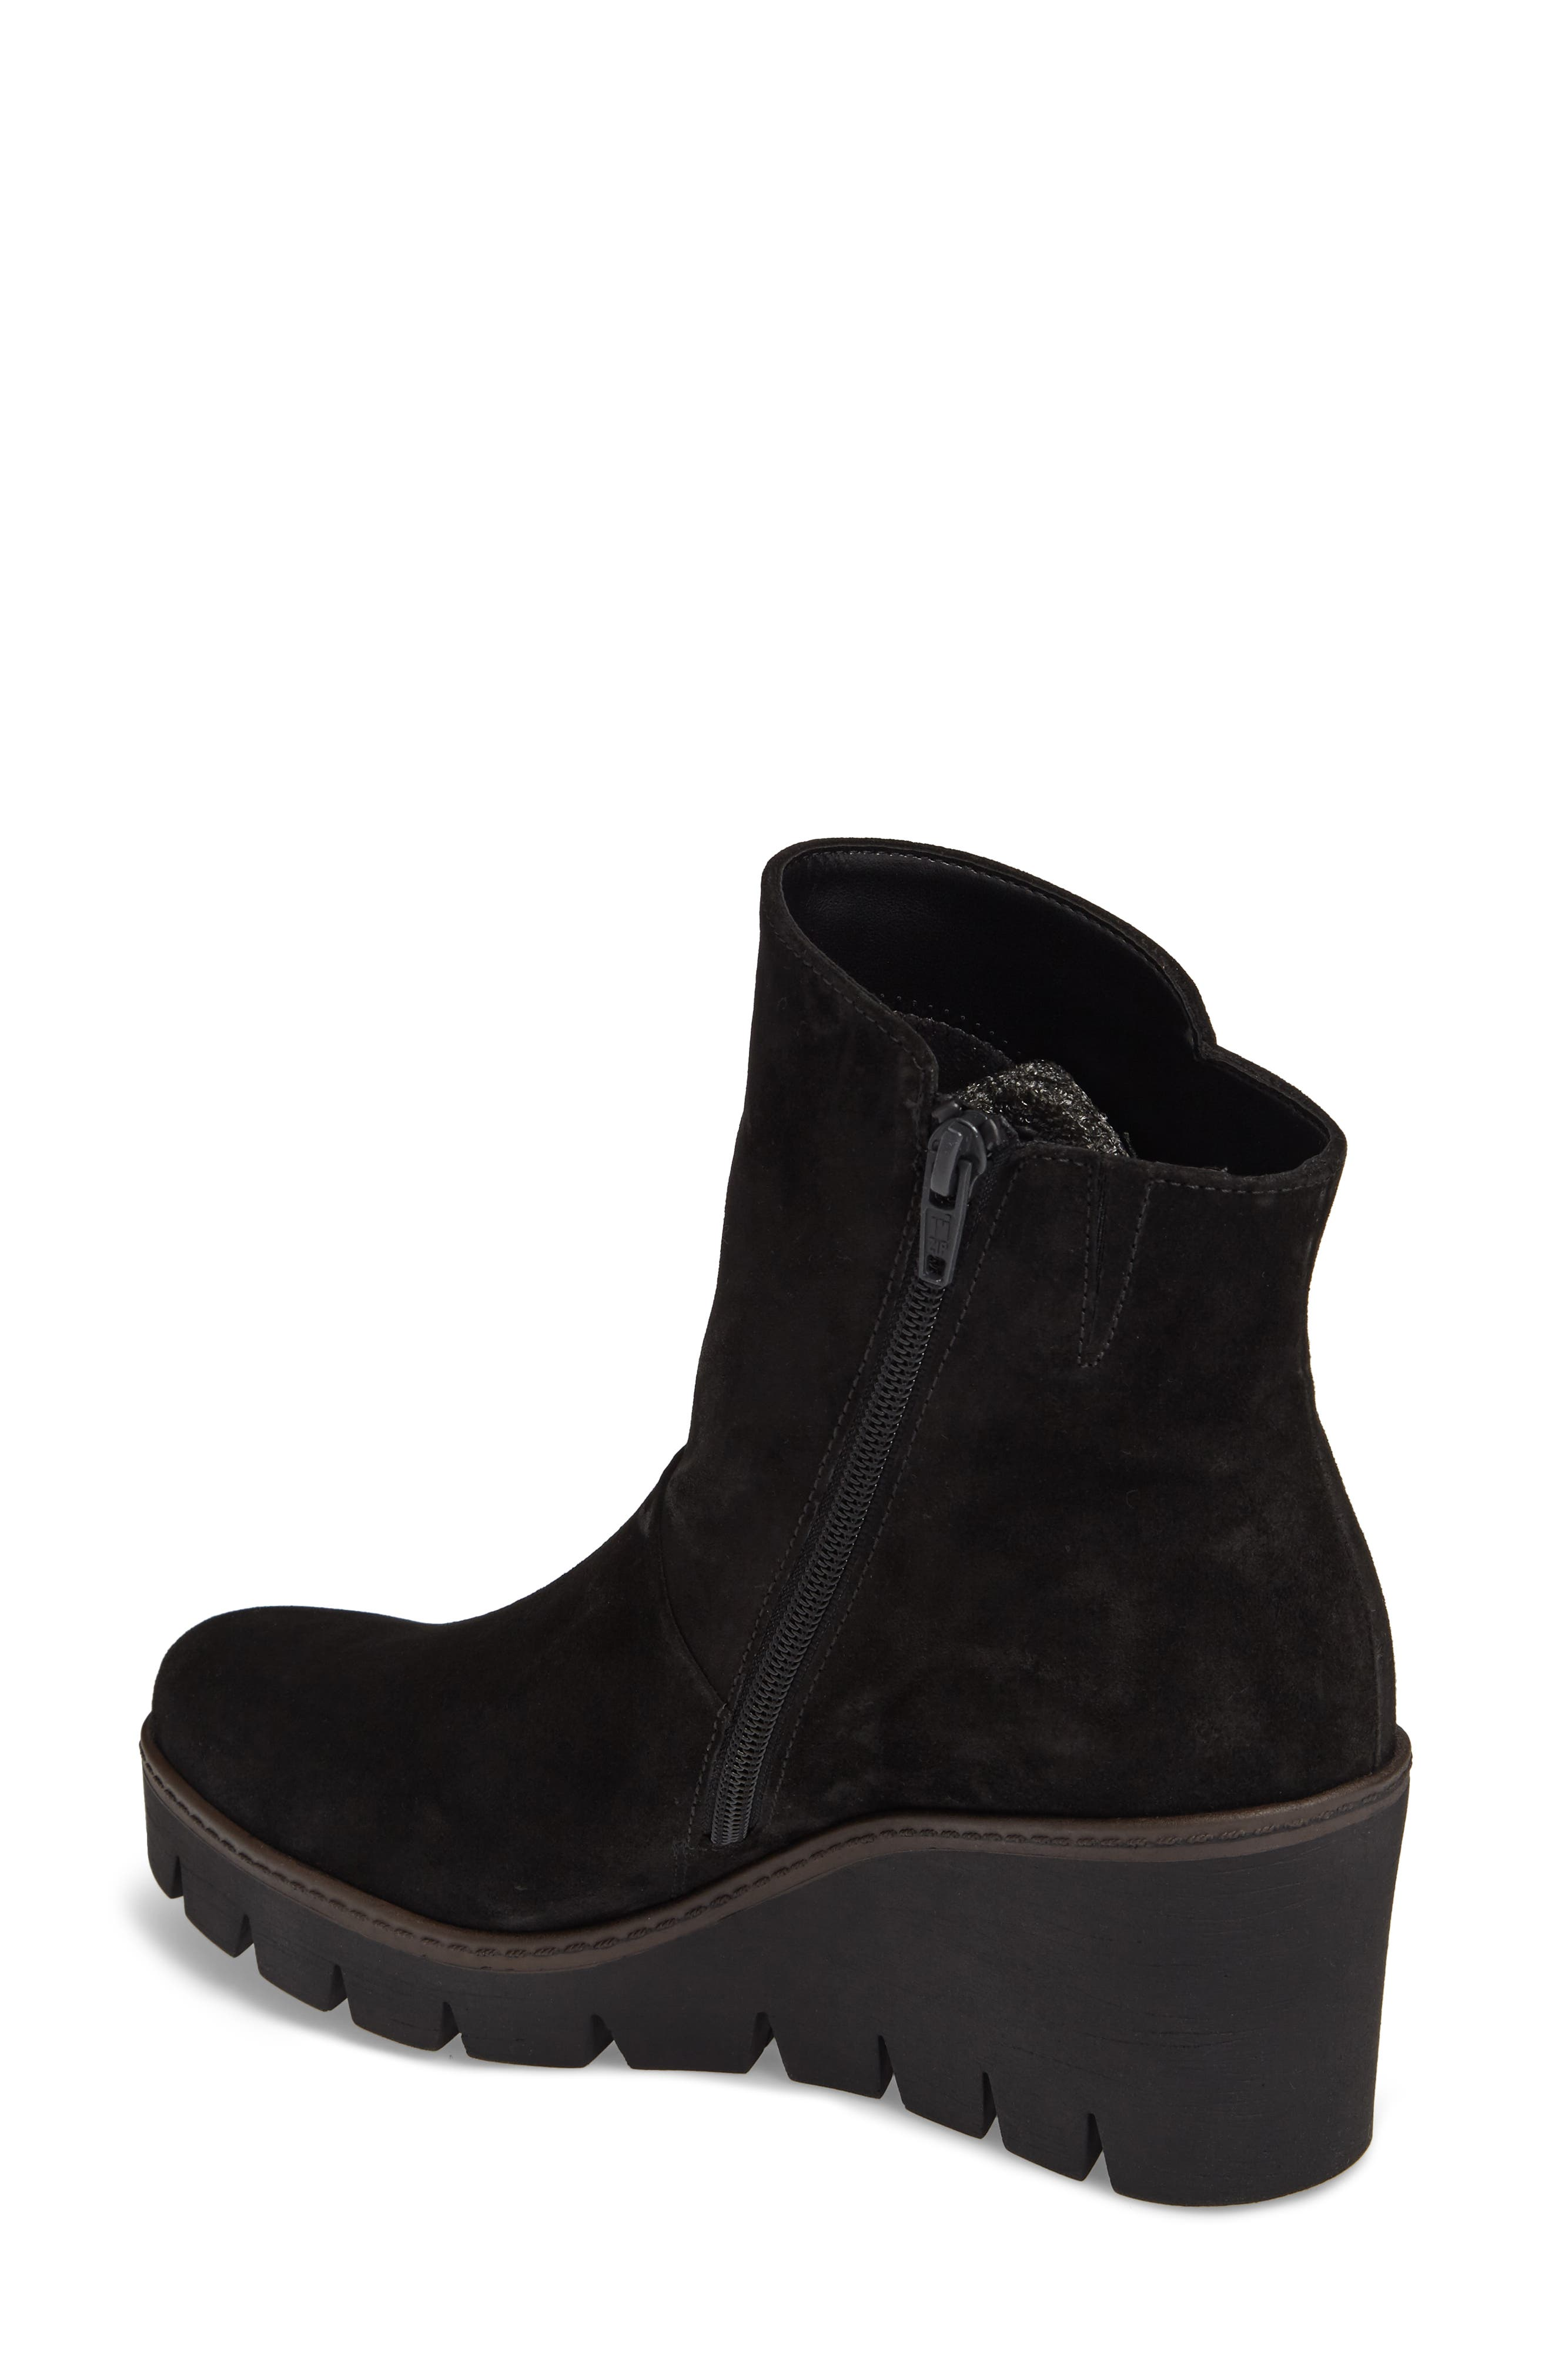 Wedge Bootie,                             Alternate thumbnail 2, color,                             BLACK SUEDE